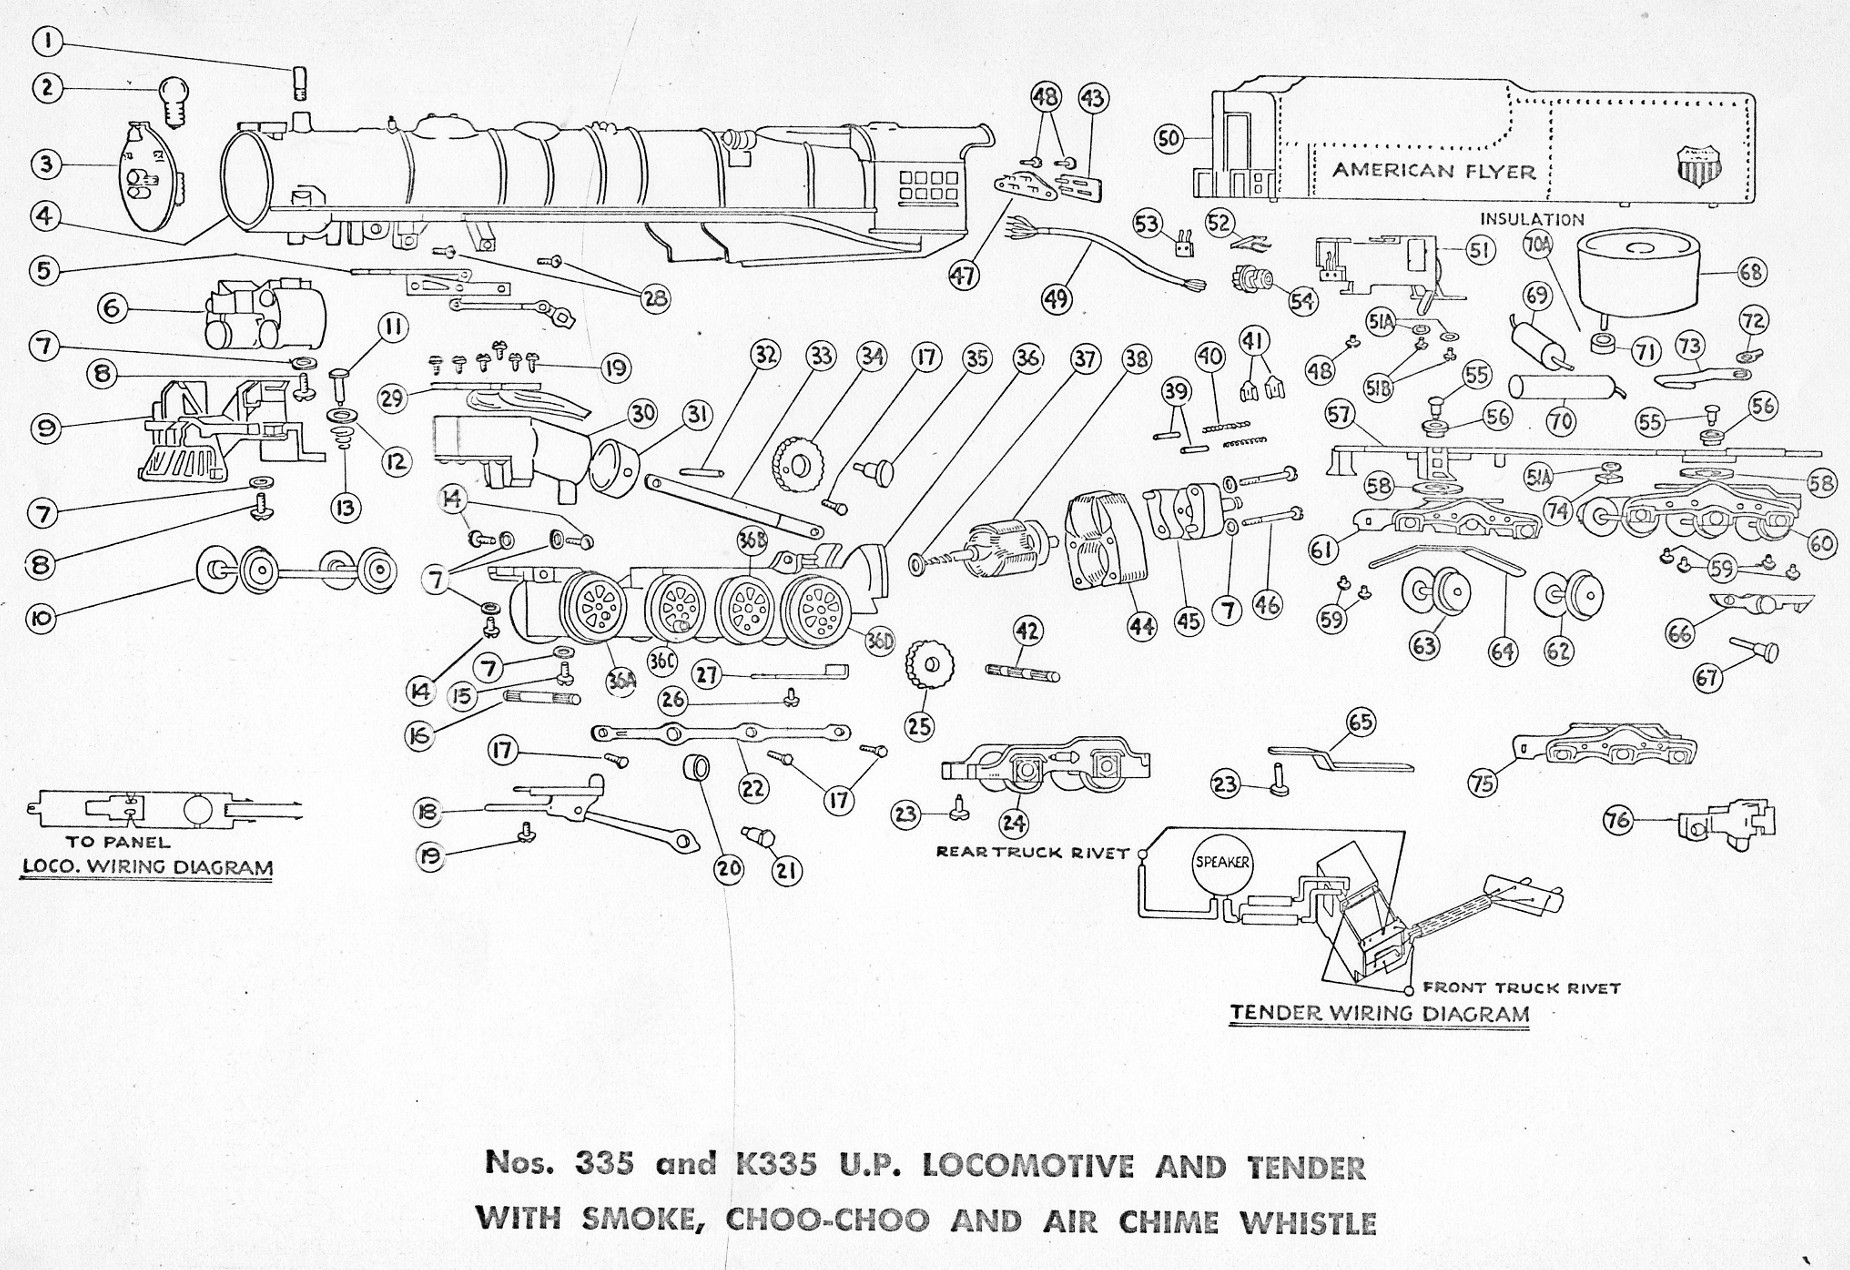 American Flyer Locomotive and Tender 335 & K335 Parts List and Diagram - Page 2